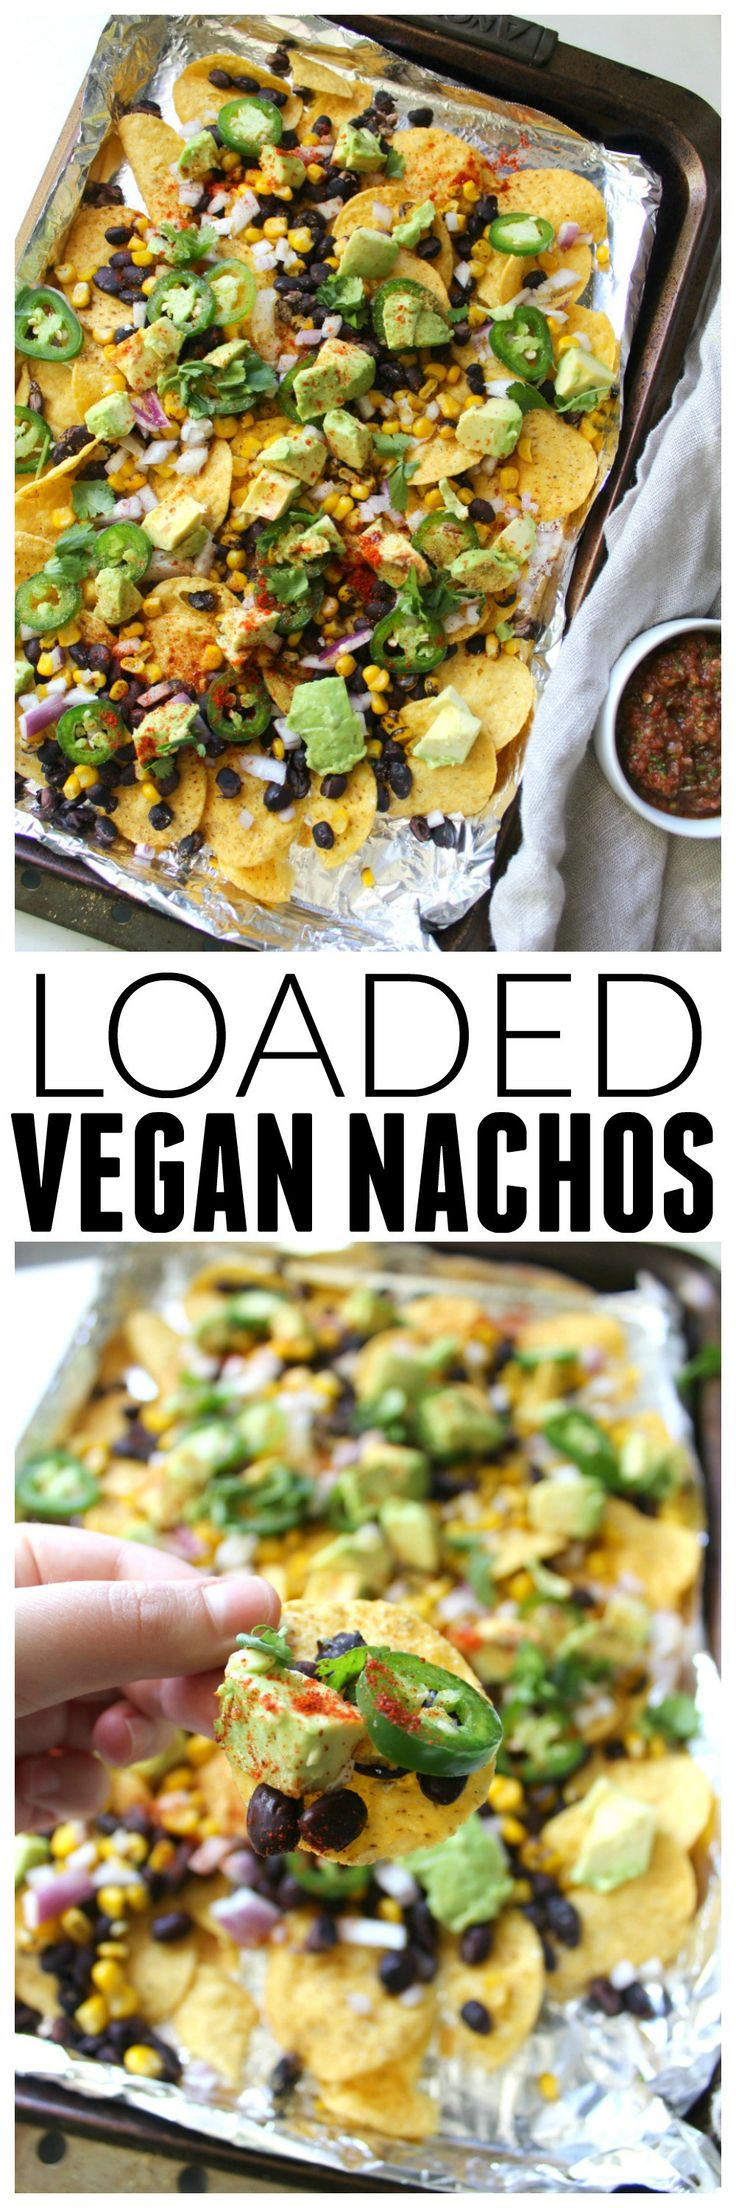 These Loaded Vegan Nachos are packed with healthy ingredients and are the perfect snack to share on game day   ThisSavoryVegan.com